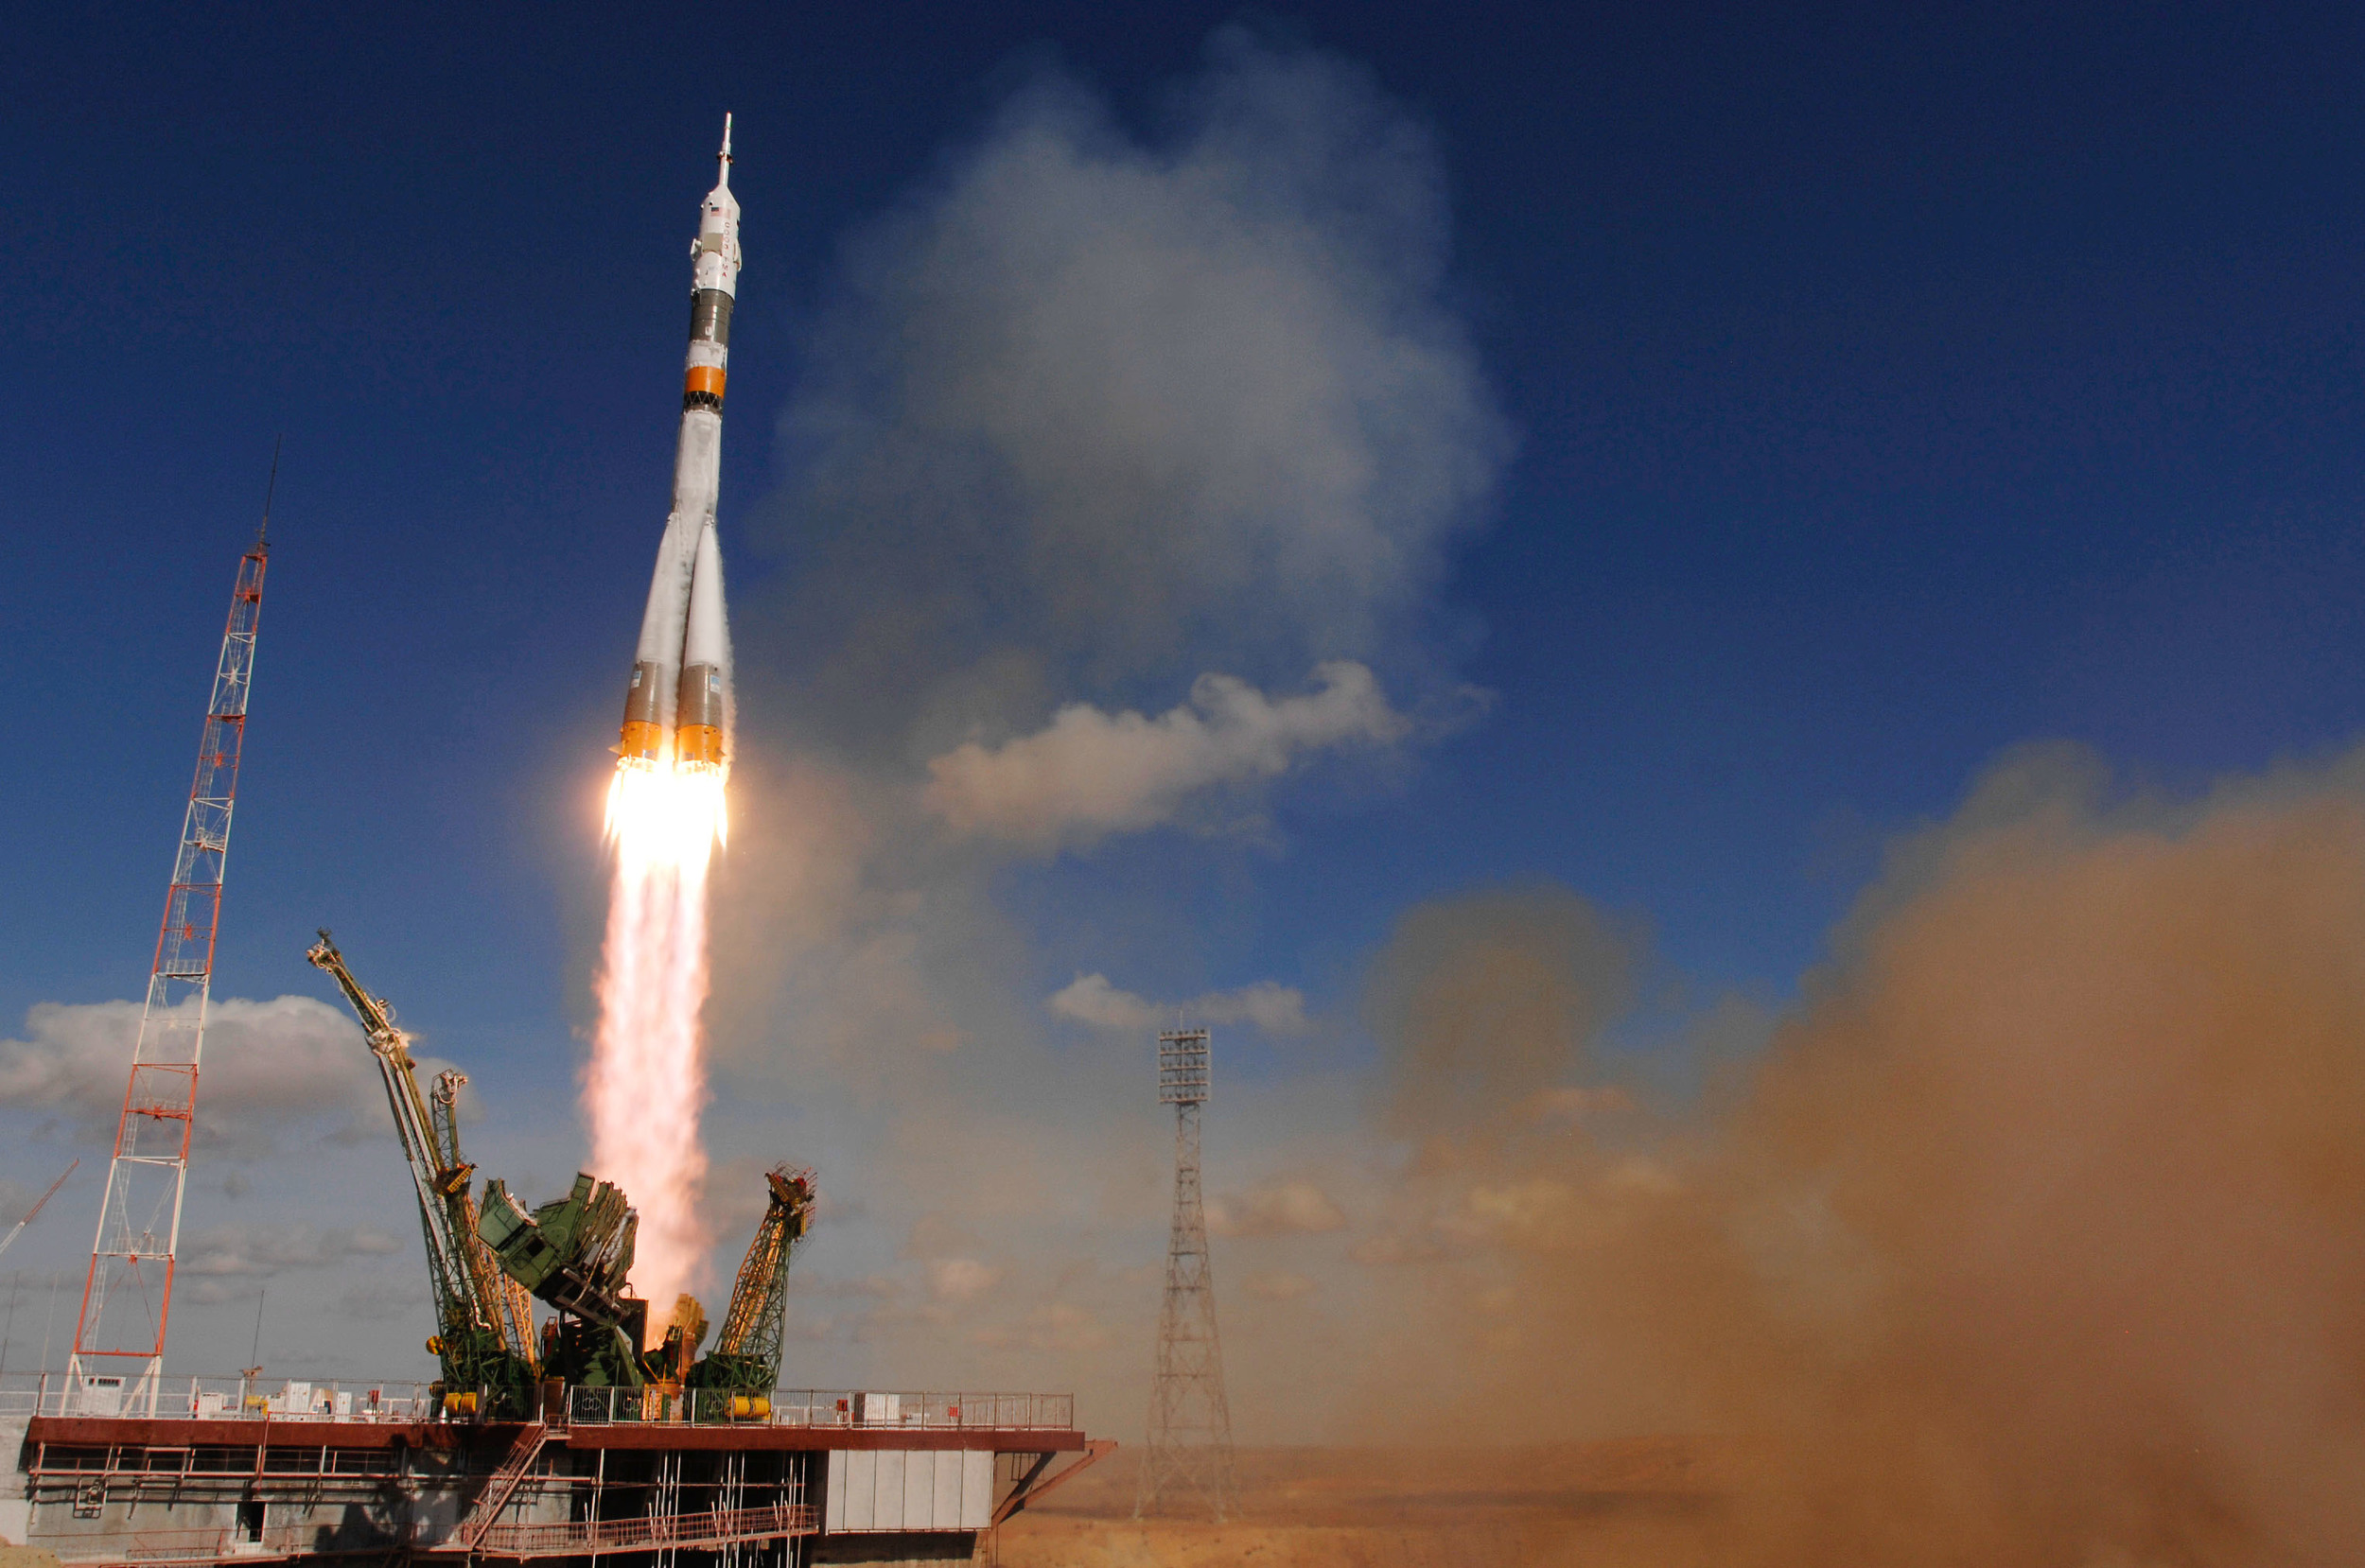 A Soyuz launches toward the International Space Station. Photo Credit: Bill Ingalls / NASA